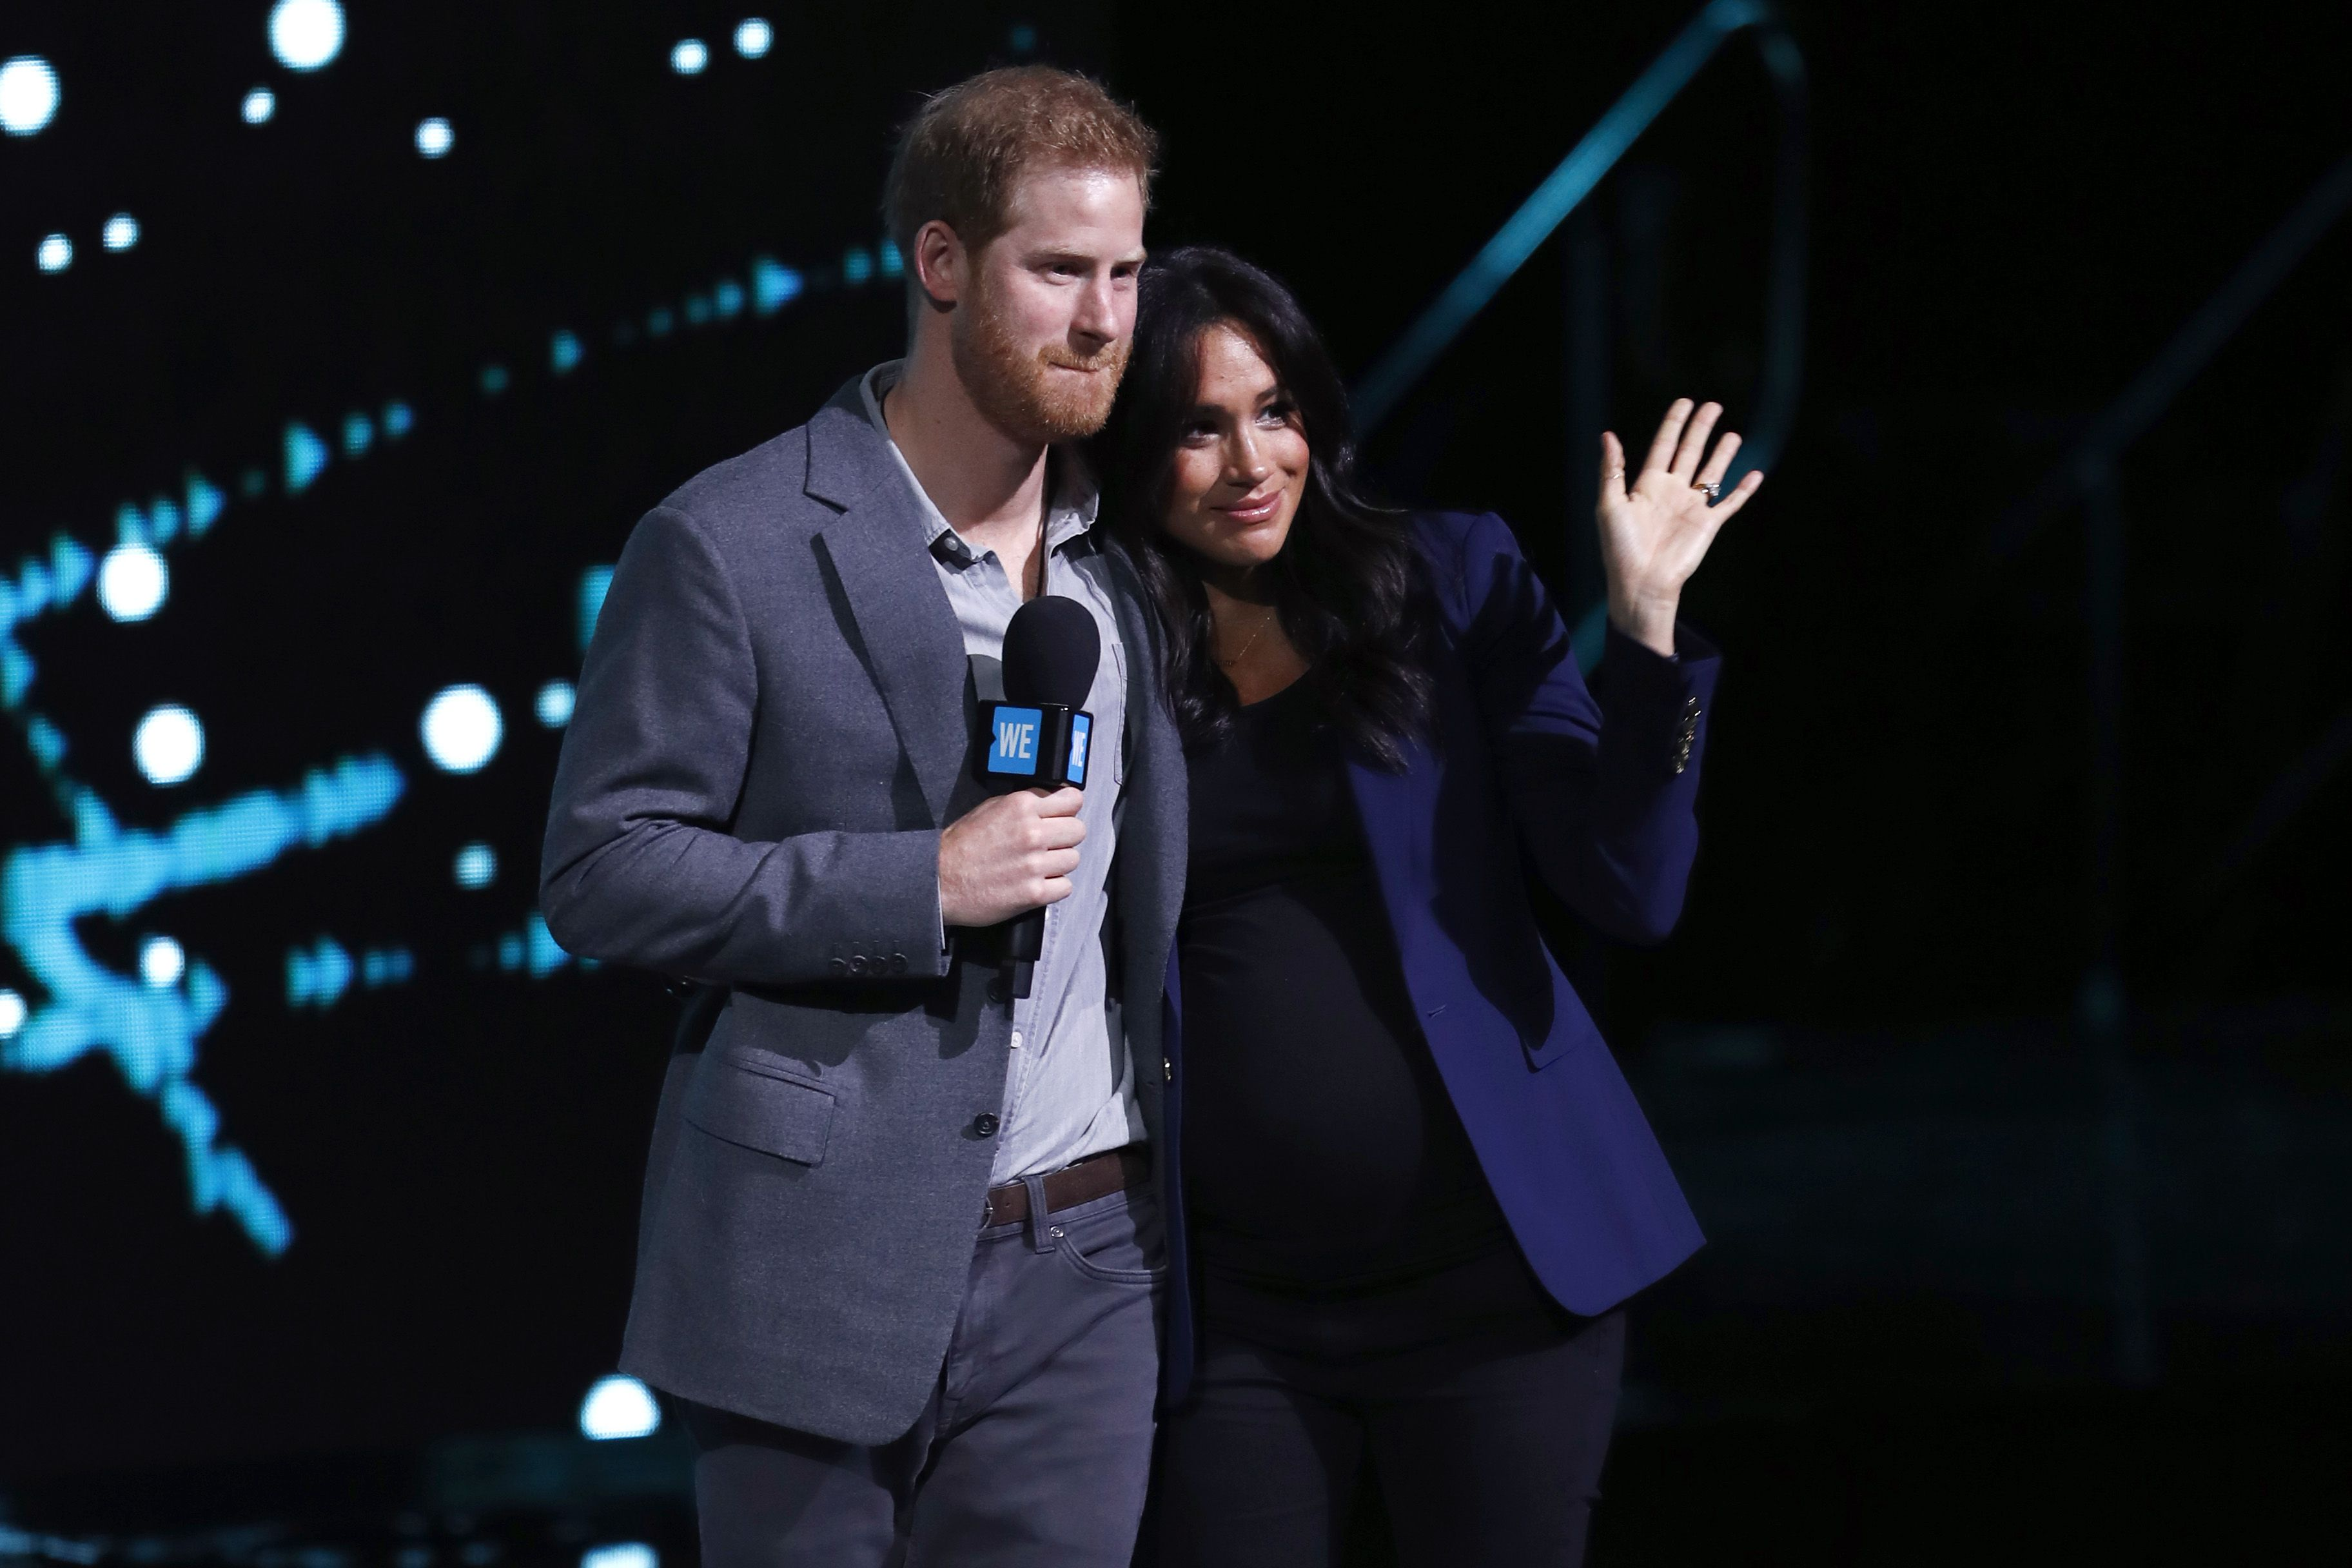 Prince Harry and Meghan Markle to no longer use HRH titles as they step back from royal duties